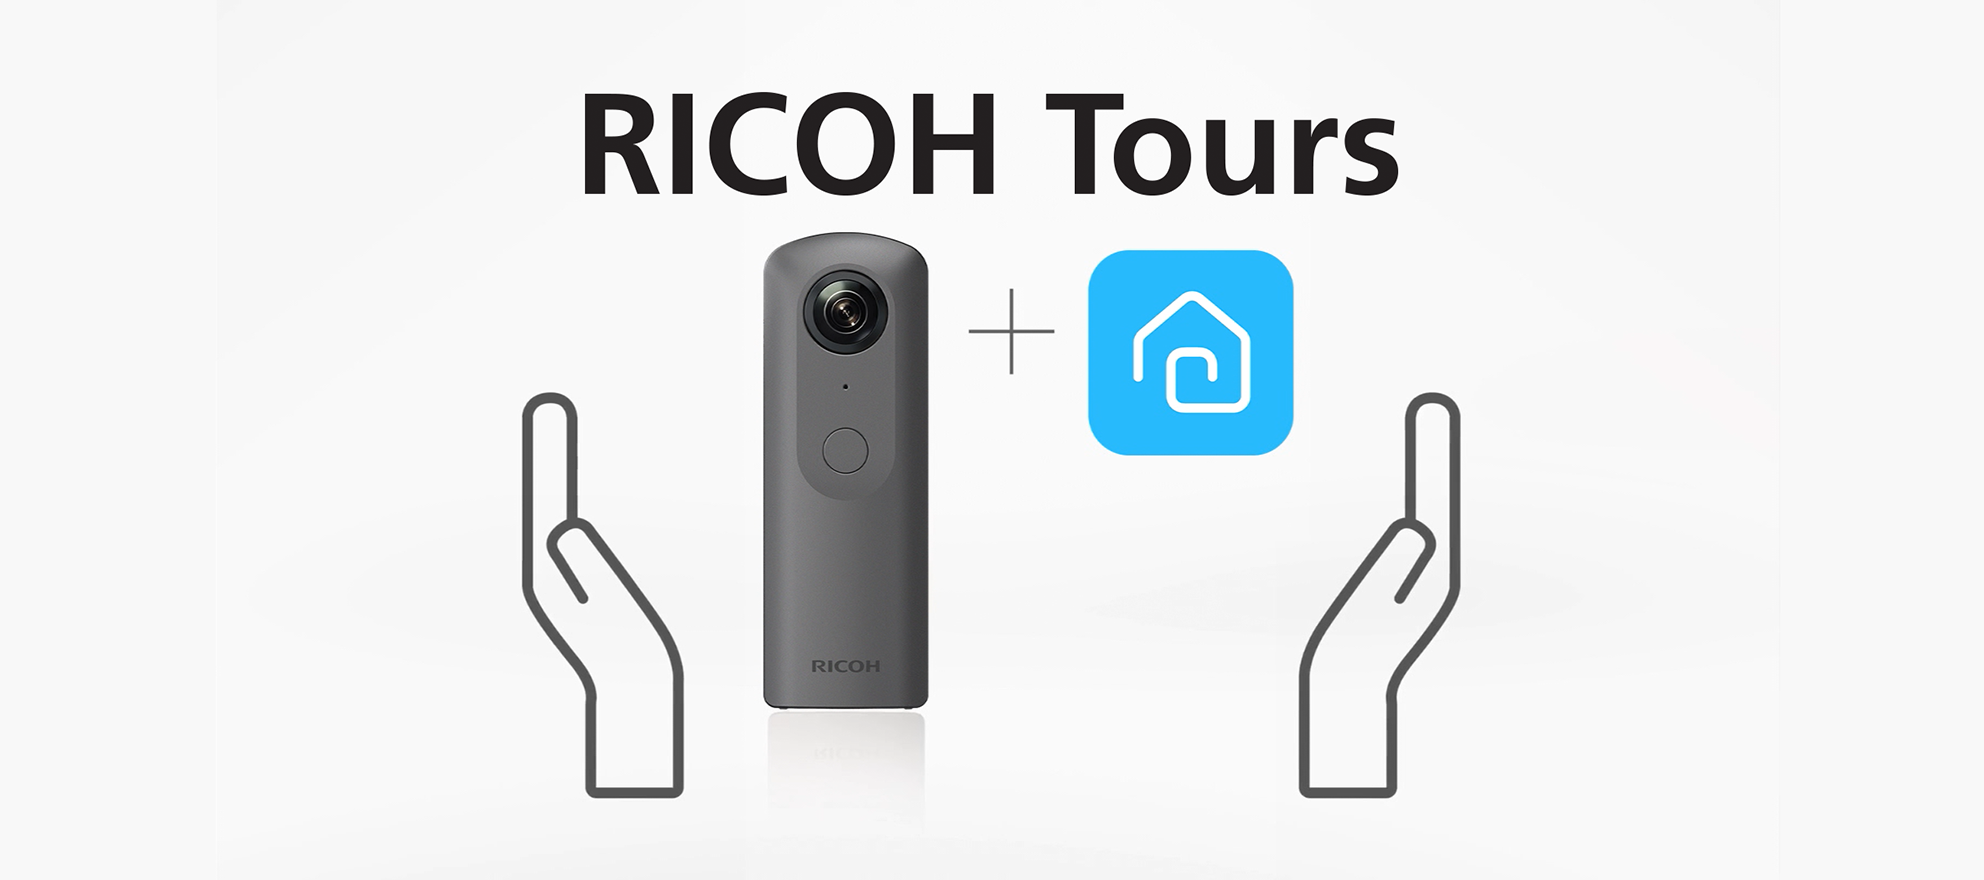 RICOH All-In-One 360° Virtual Tours